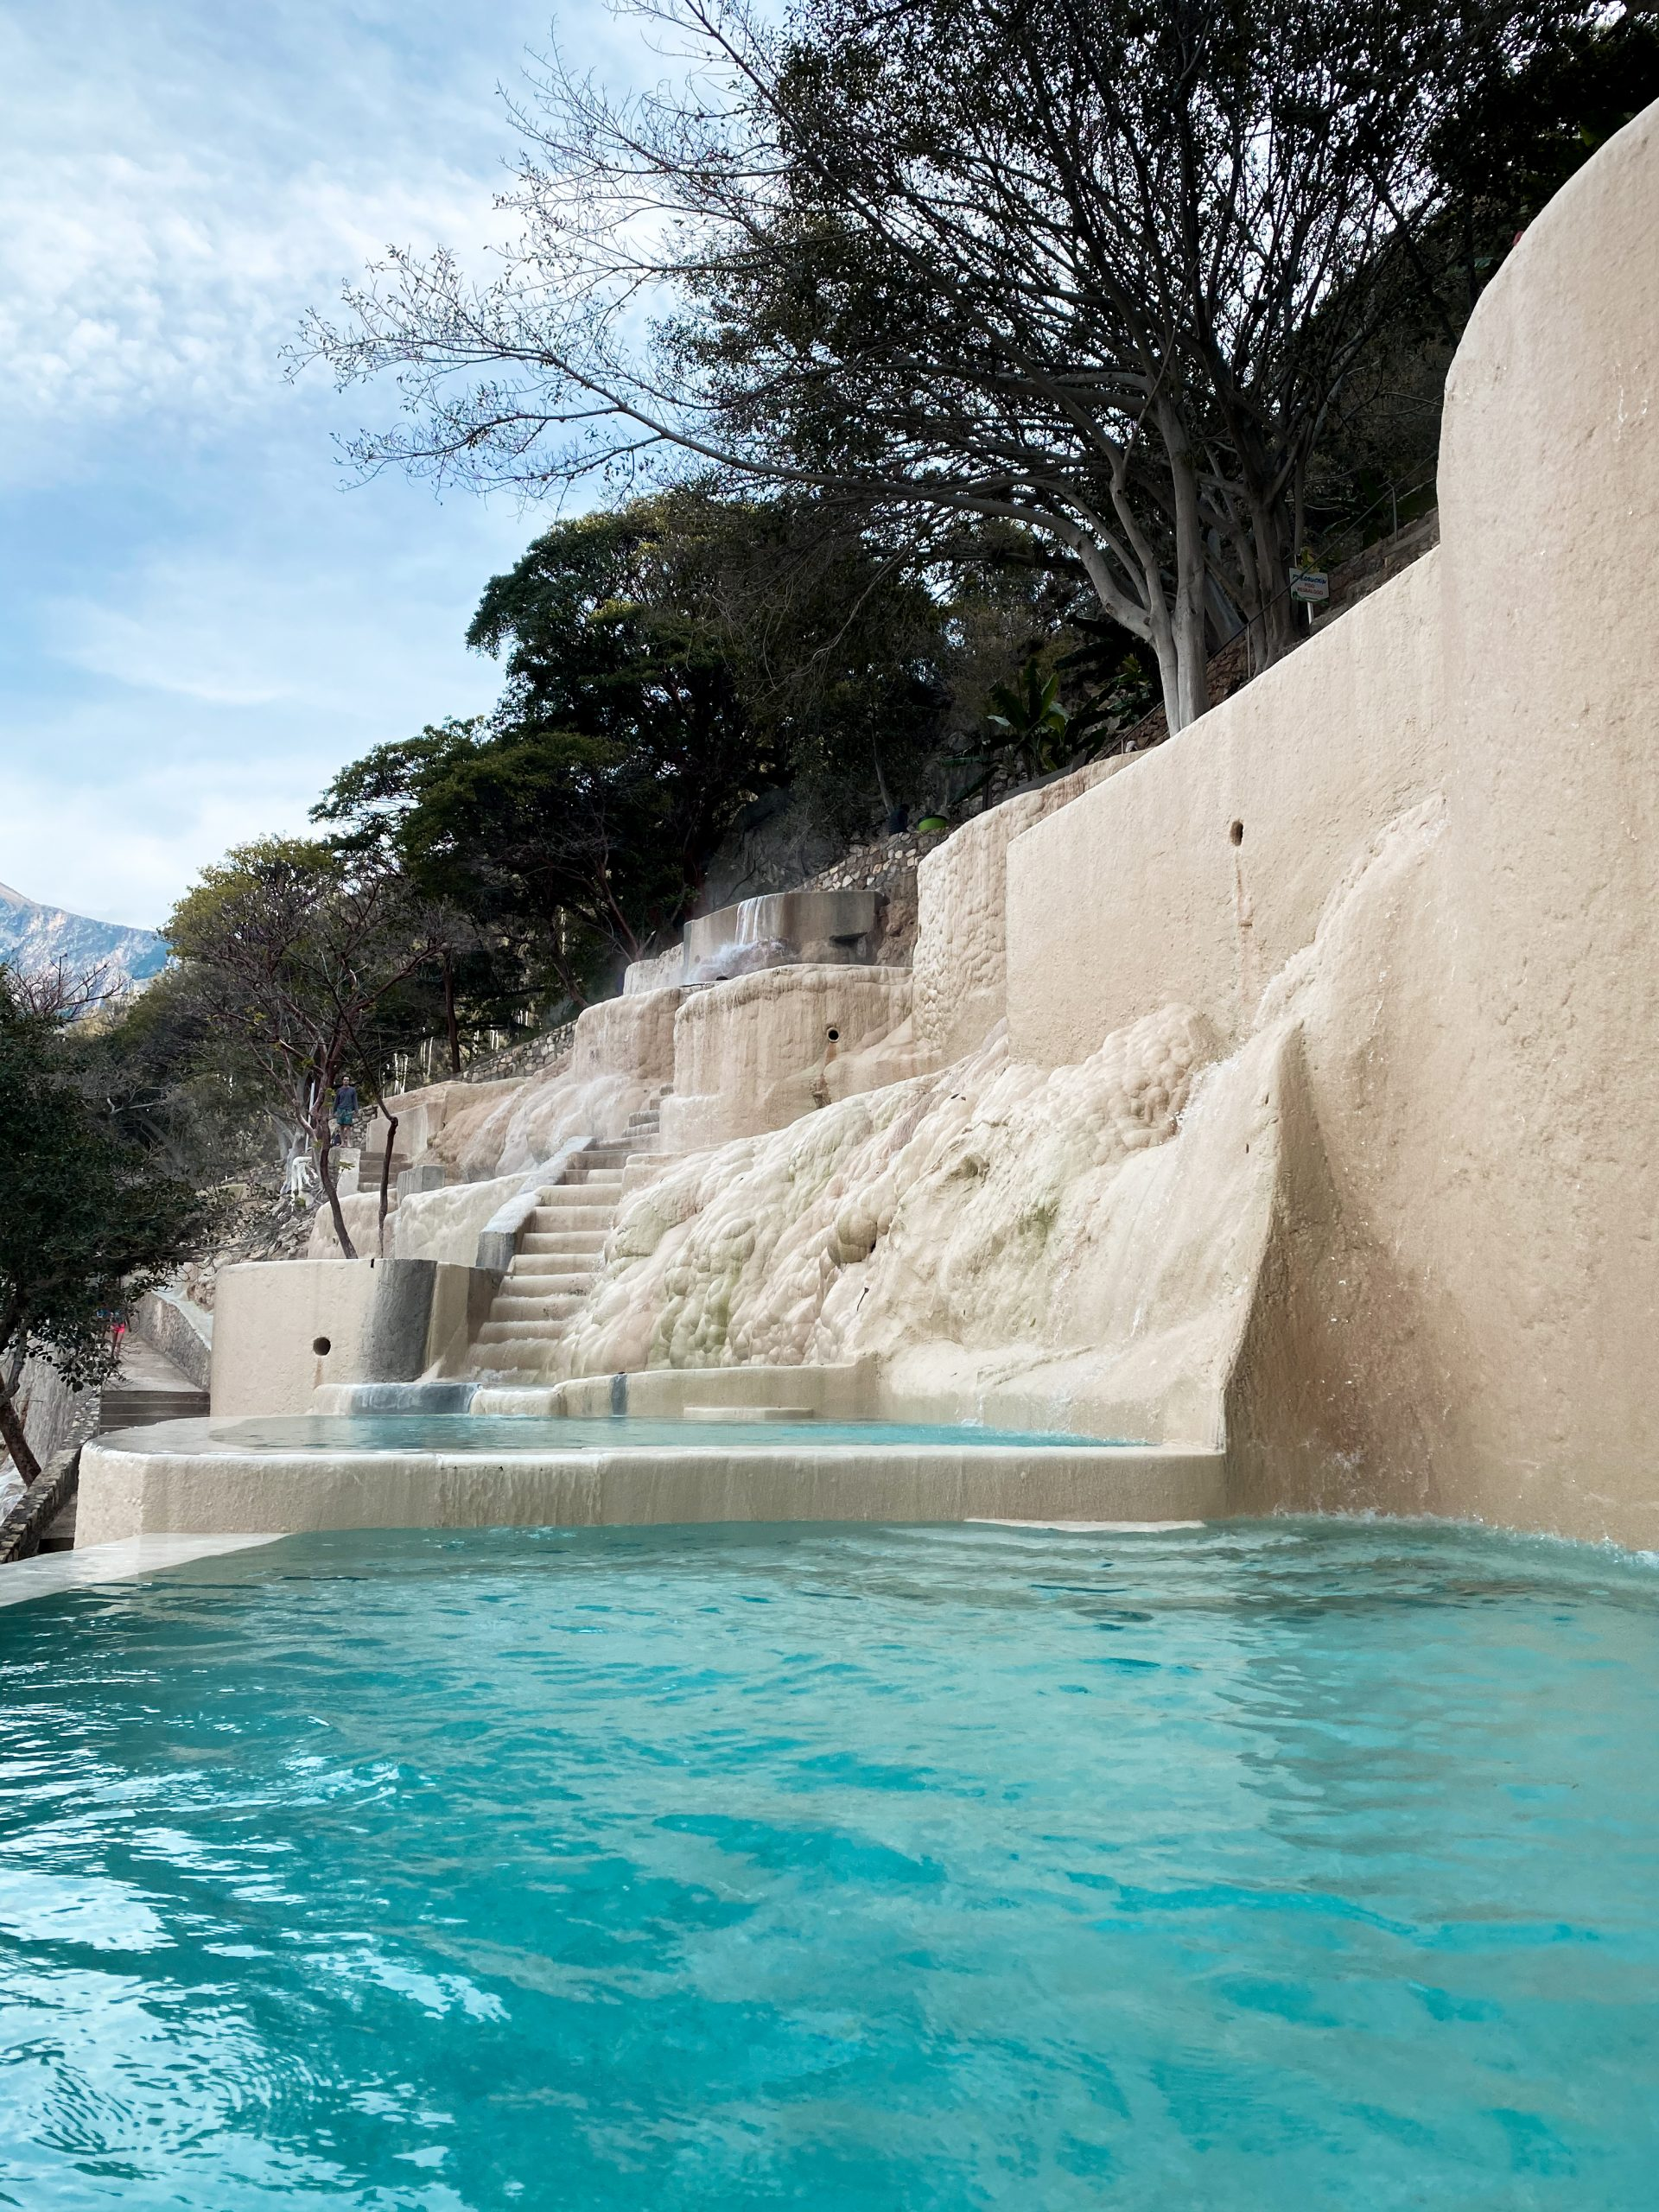 grutas tolantongo turquoise blue water carved cliff side thermal pool natural hot springs hidalgo mexico